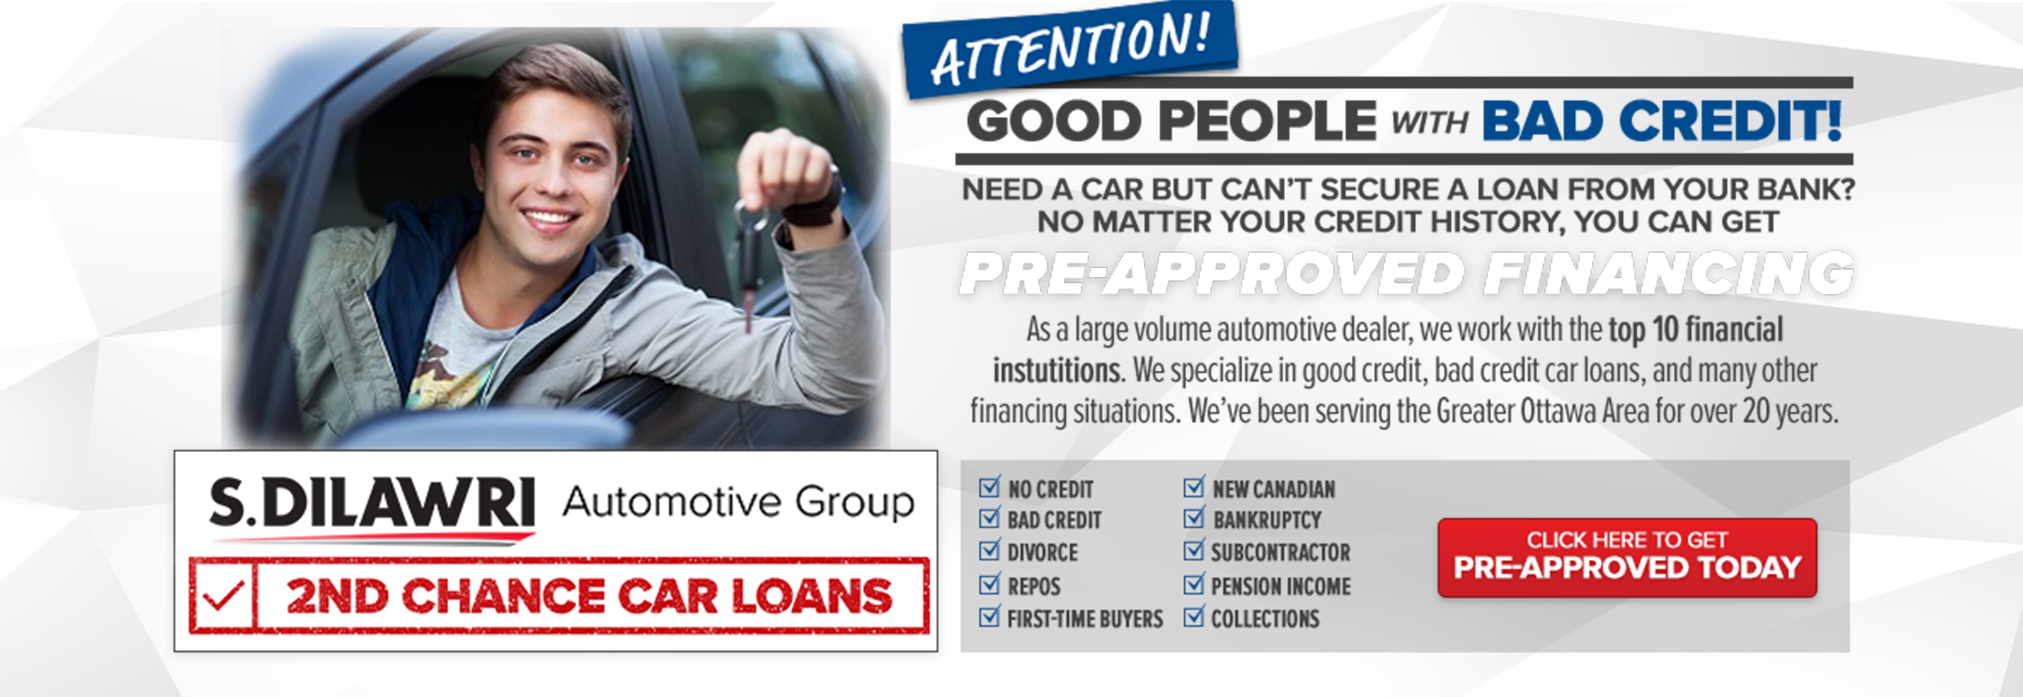 get approved for auto finance now